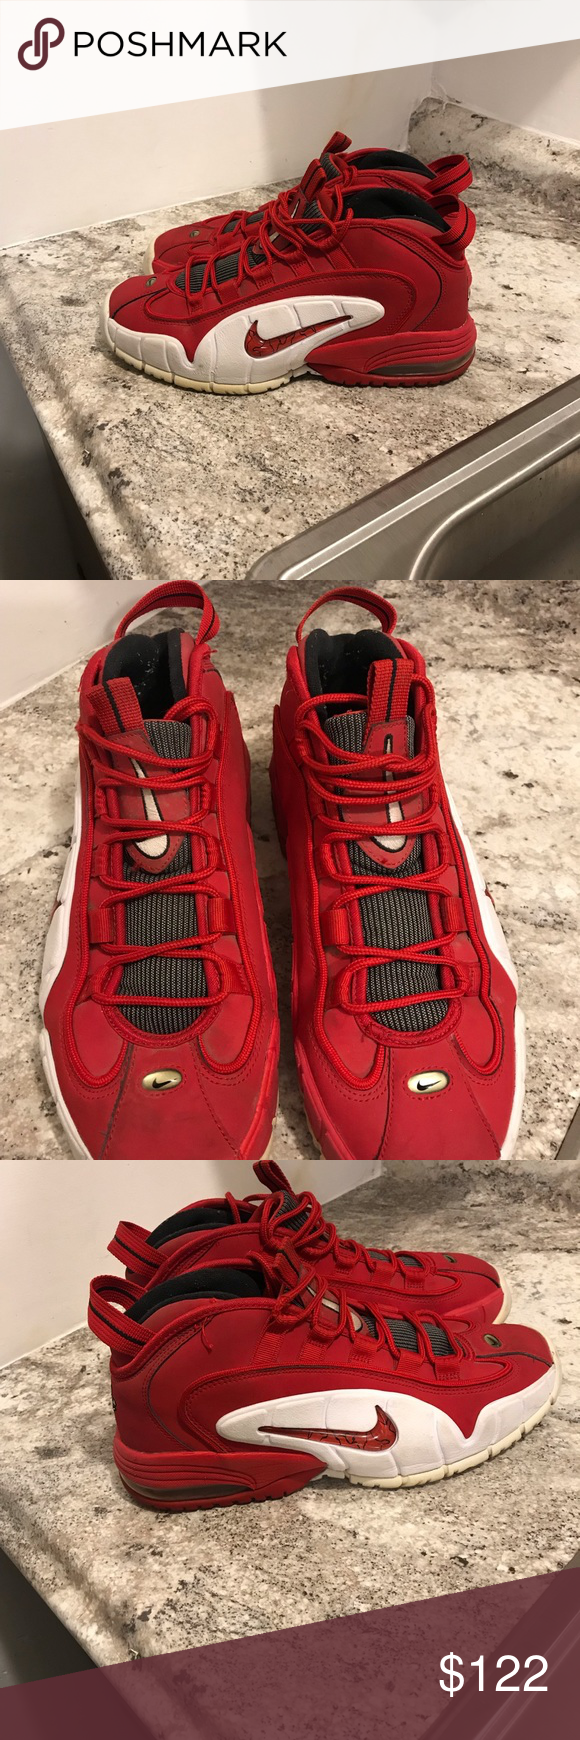 """huge discount e4a2c 7b2d1 Nike Air Max Penny 1 Nike Air Max Penny 1 """"Rival Pack"""" University Red White  685153-600 Mens Size 10.5 -Nike Air Max Penny 1 Nike Shoes Athletic Shoes"""